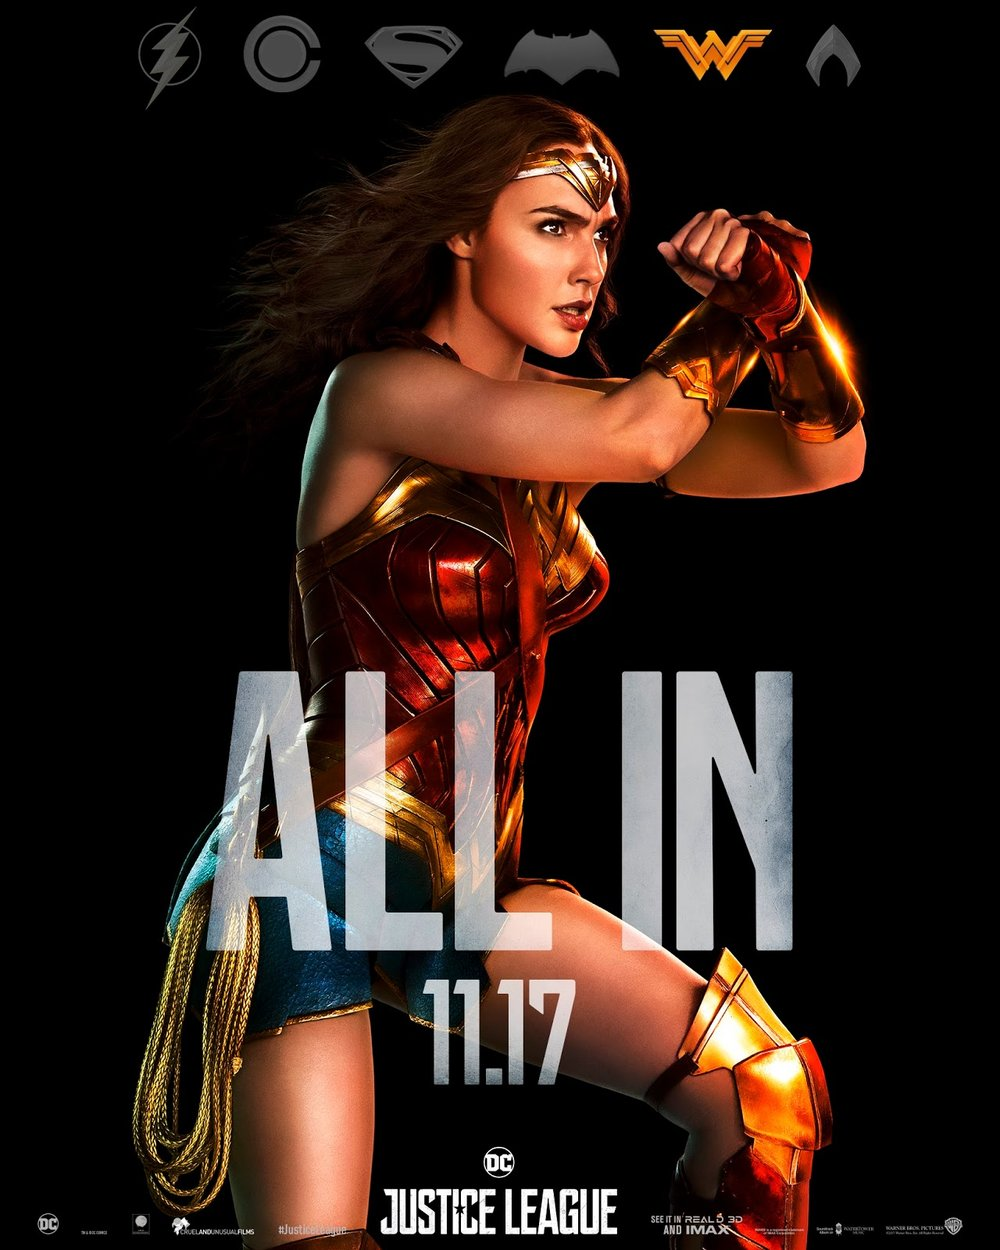 Justice-League-Movie-2017-Wonder-Woman-Gal-Gadot-1638x2048.jpg